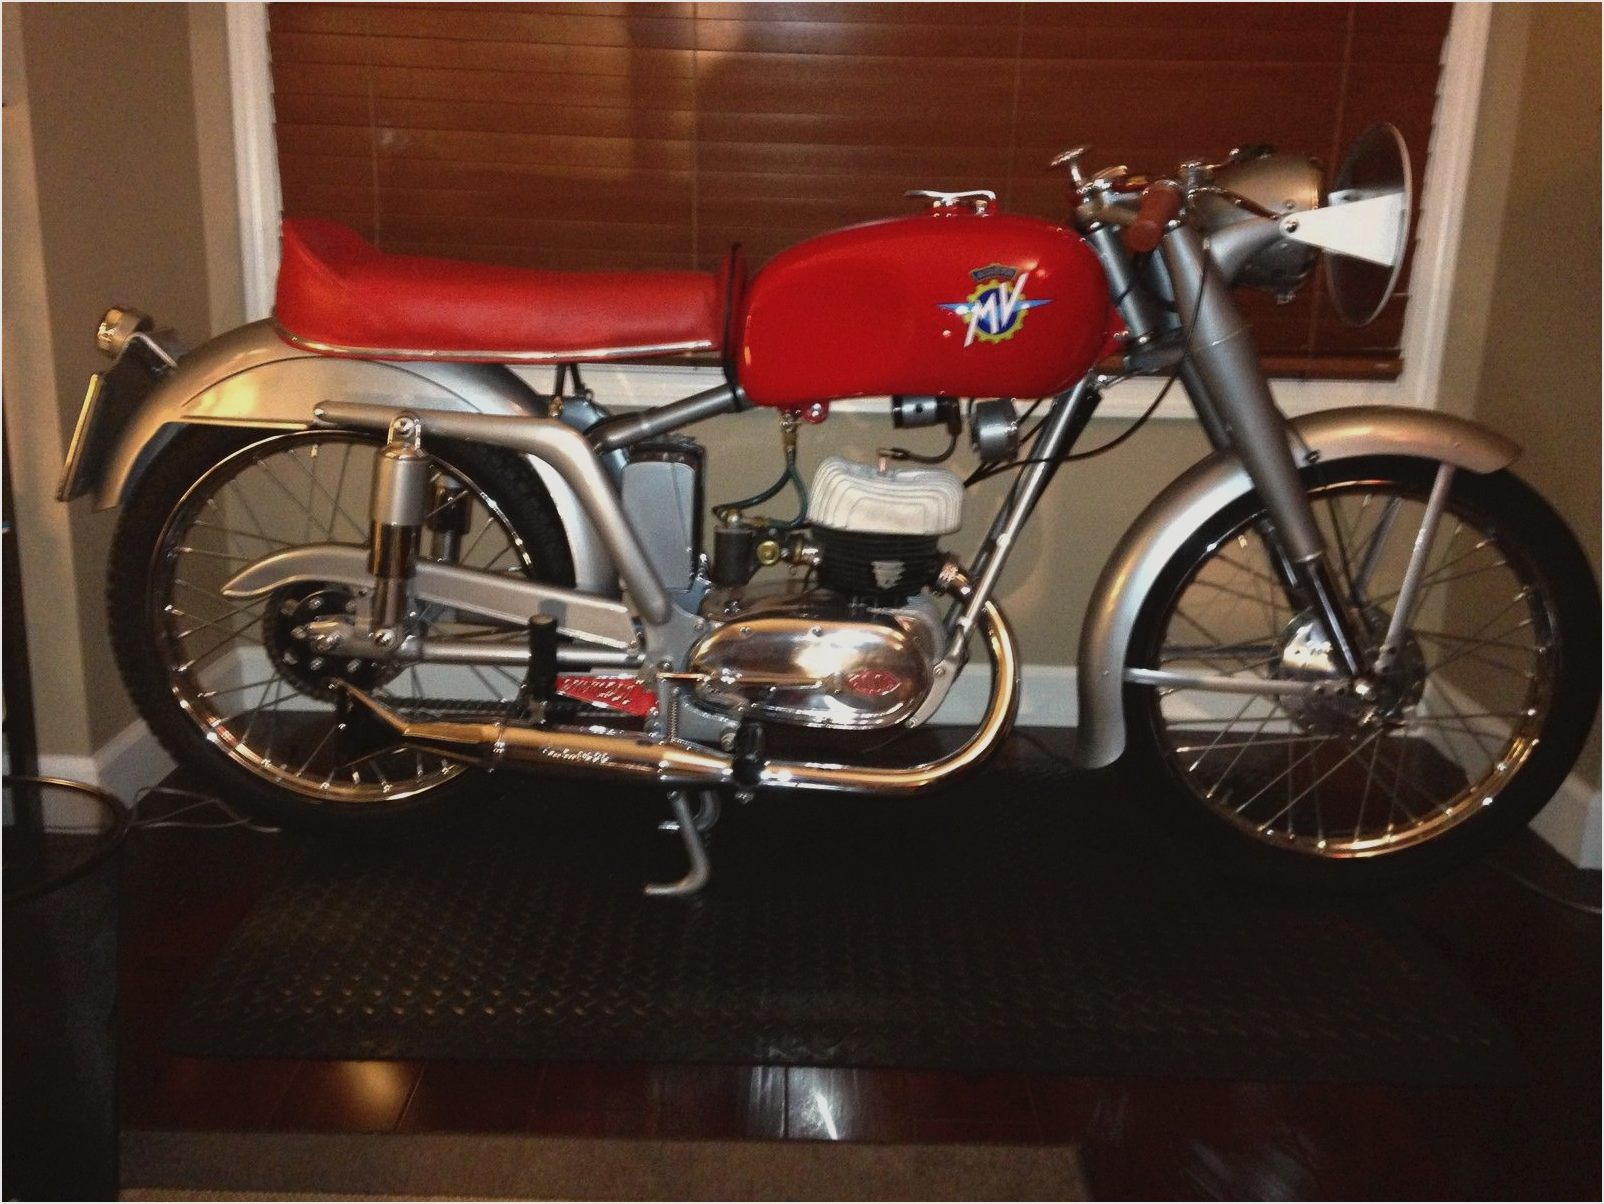 MV Agusta 125 S 1975 images #113426